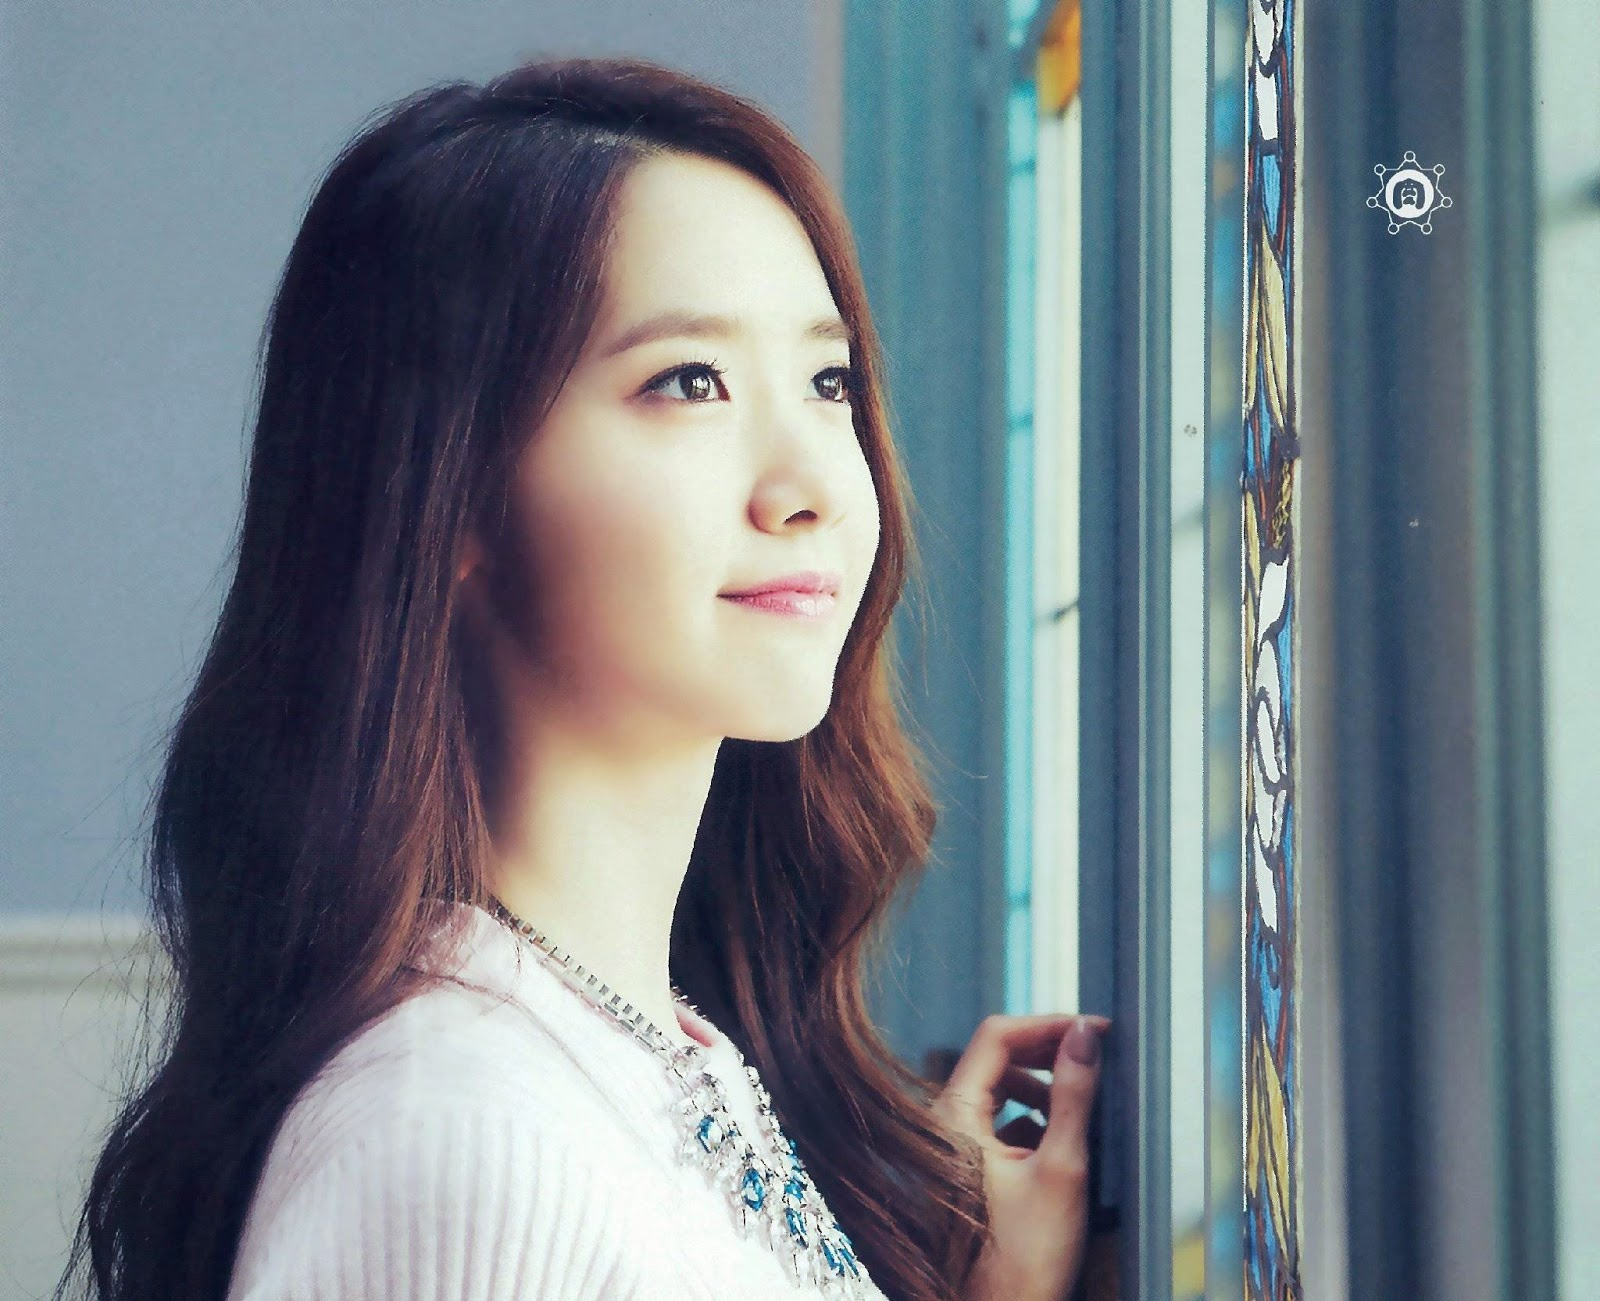 SNSD YoonA (윤아; ユナ) Girls Generation The Best Scan Photos 4